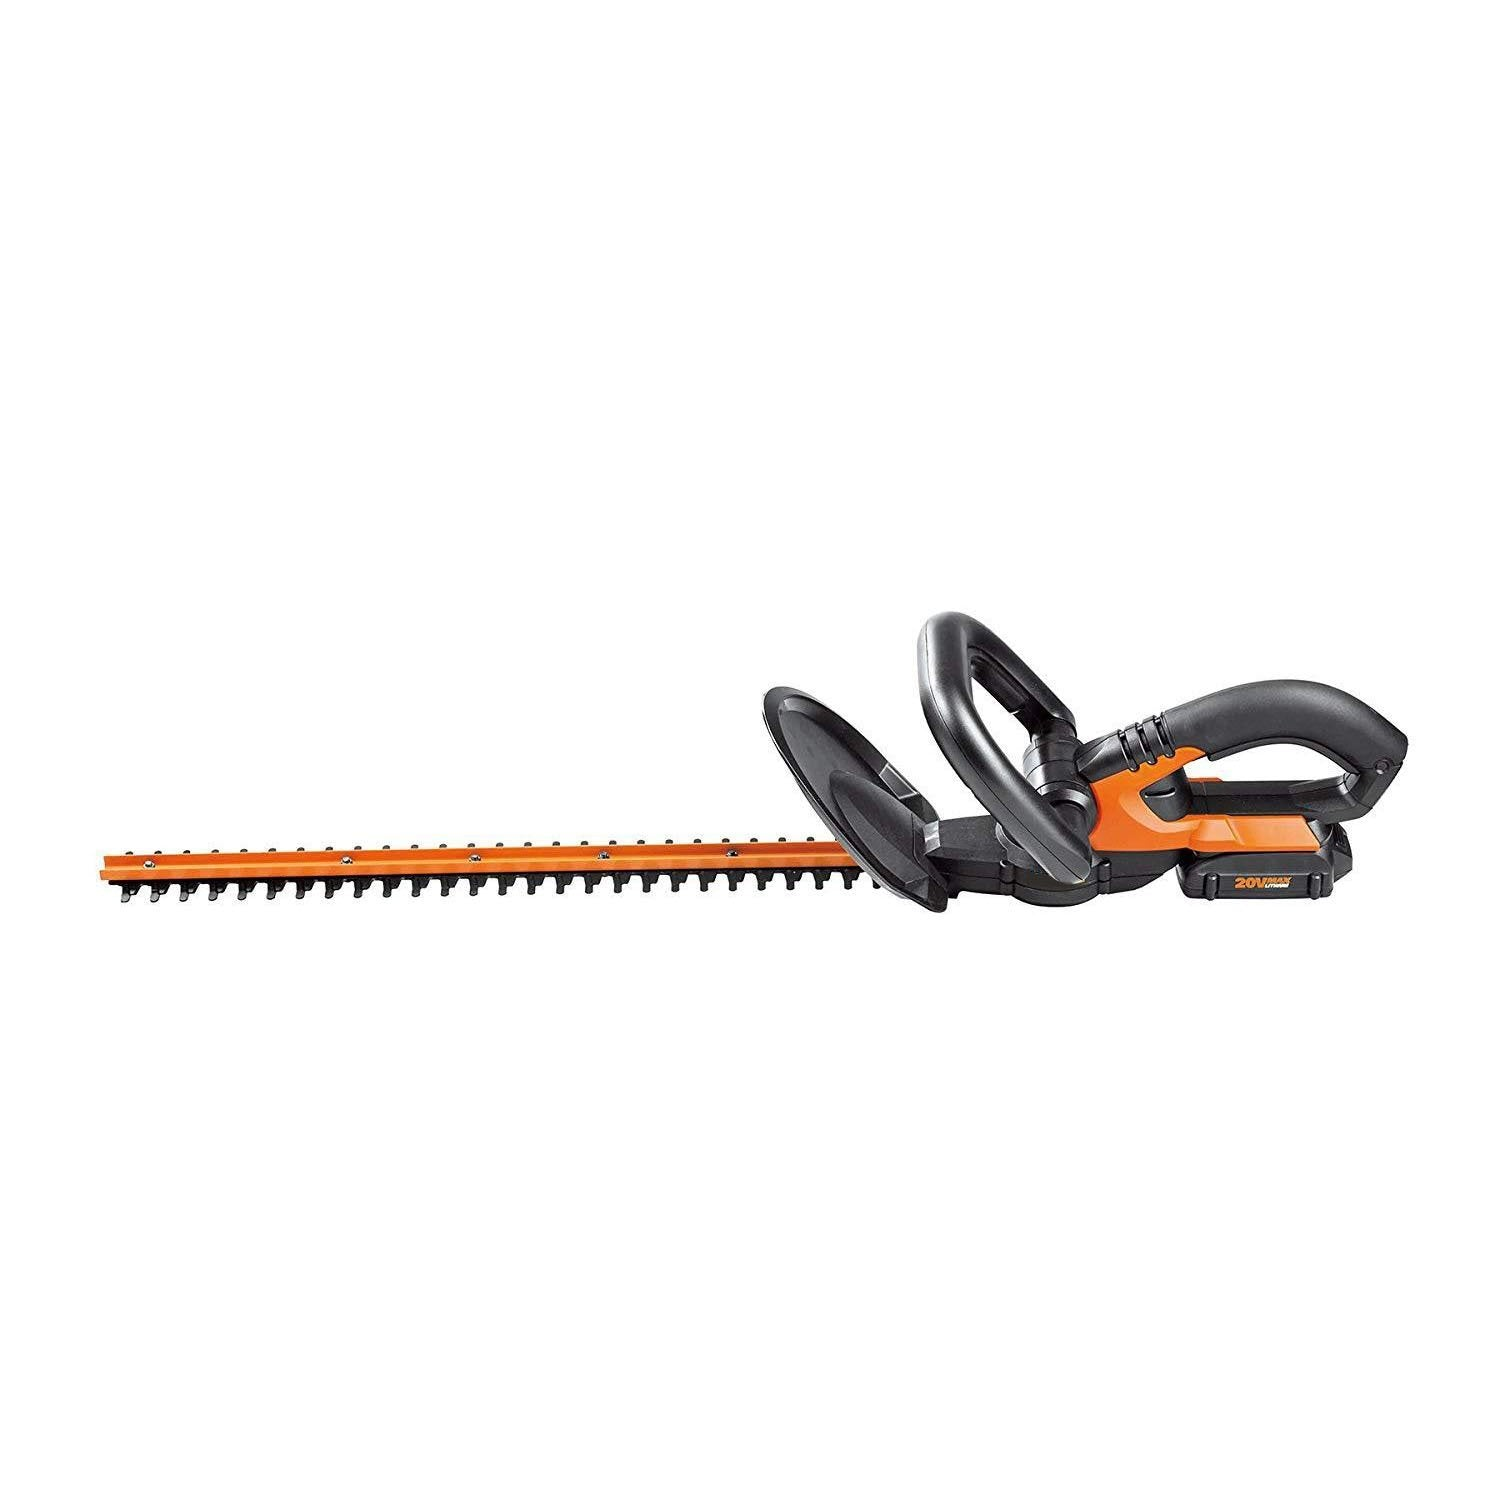 Portability Cordless Electric Hedge Trimmer